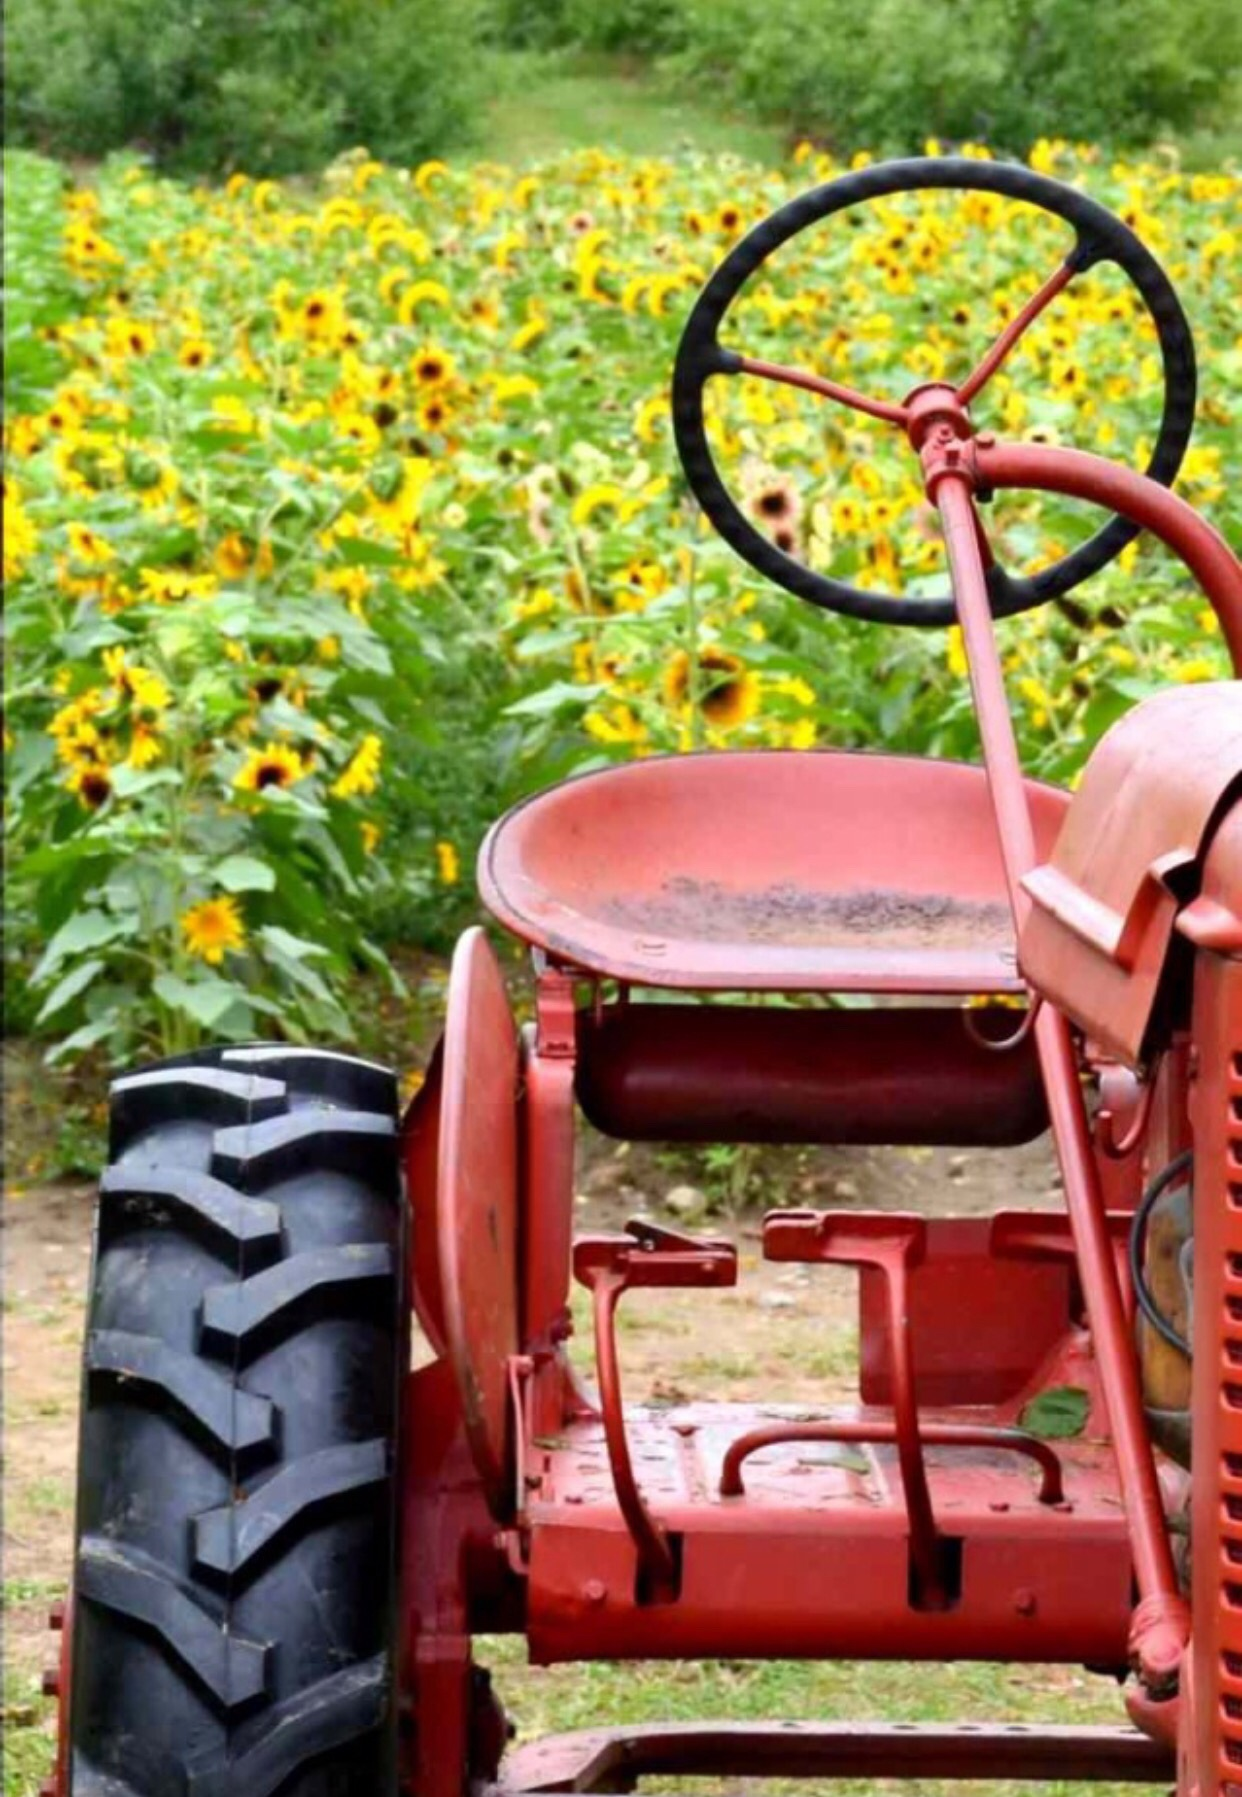 Tractor in front field of sunflowers by Tracey Colon